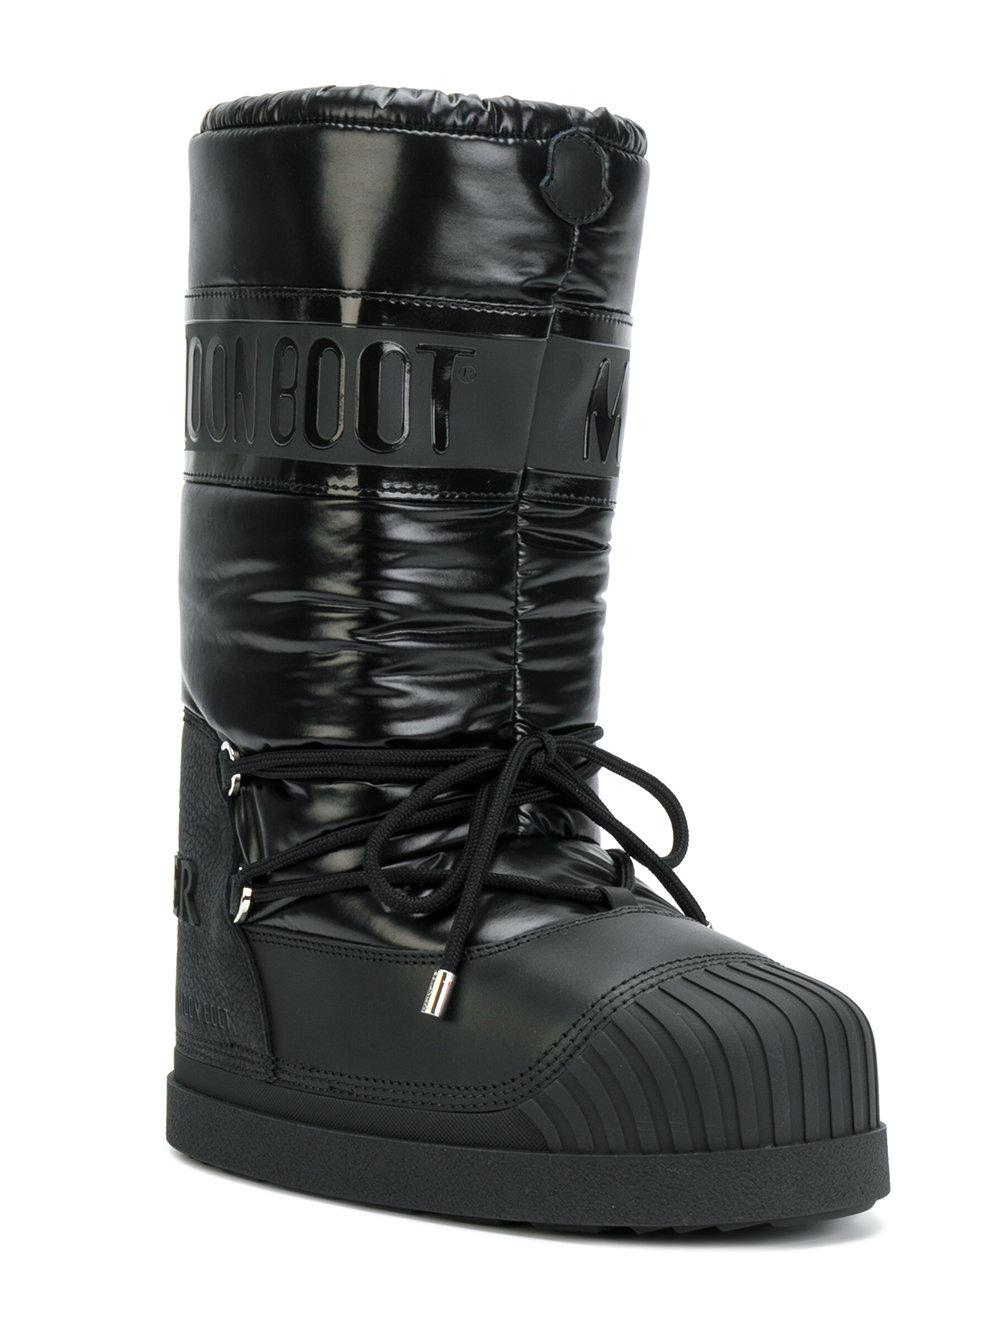 49ced49033d9 Moncler Venus Moon Boots in Black - Lyst